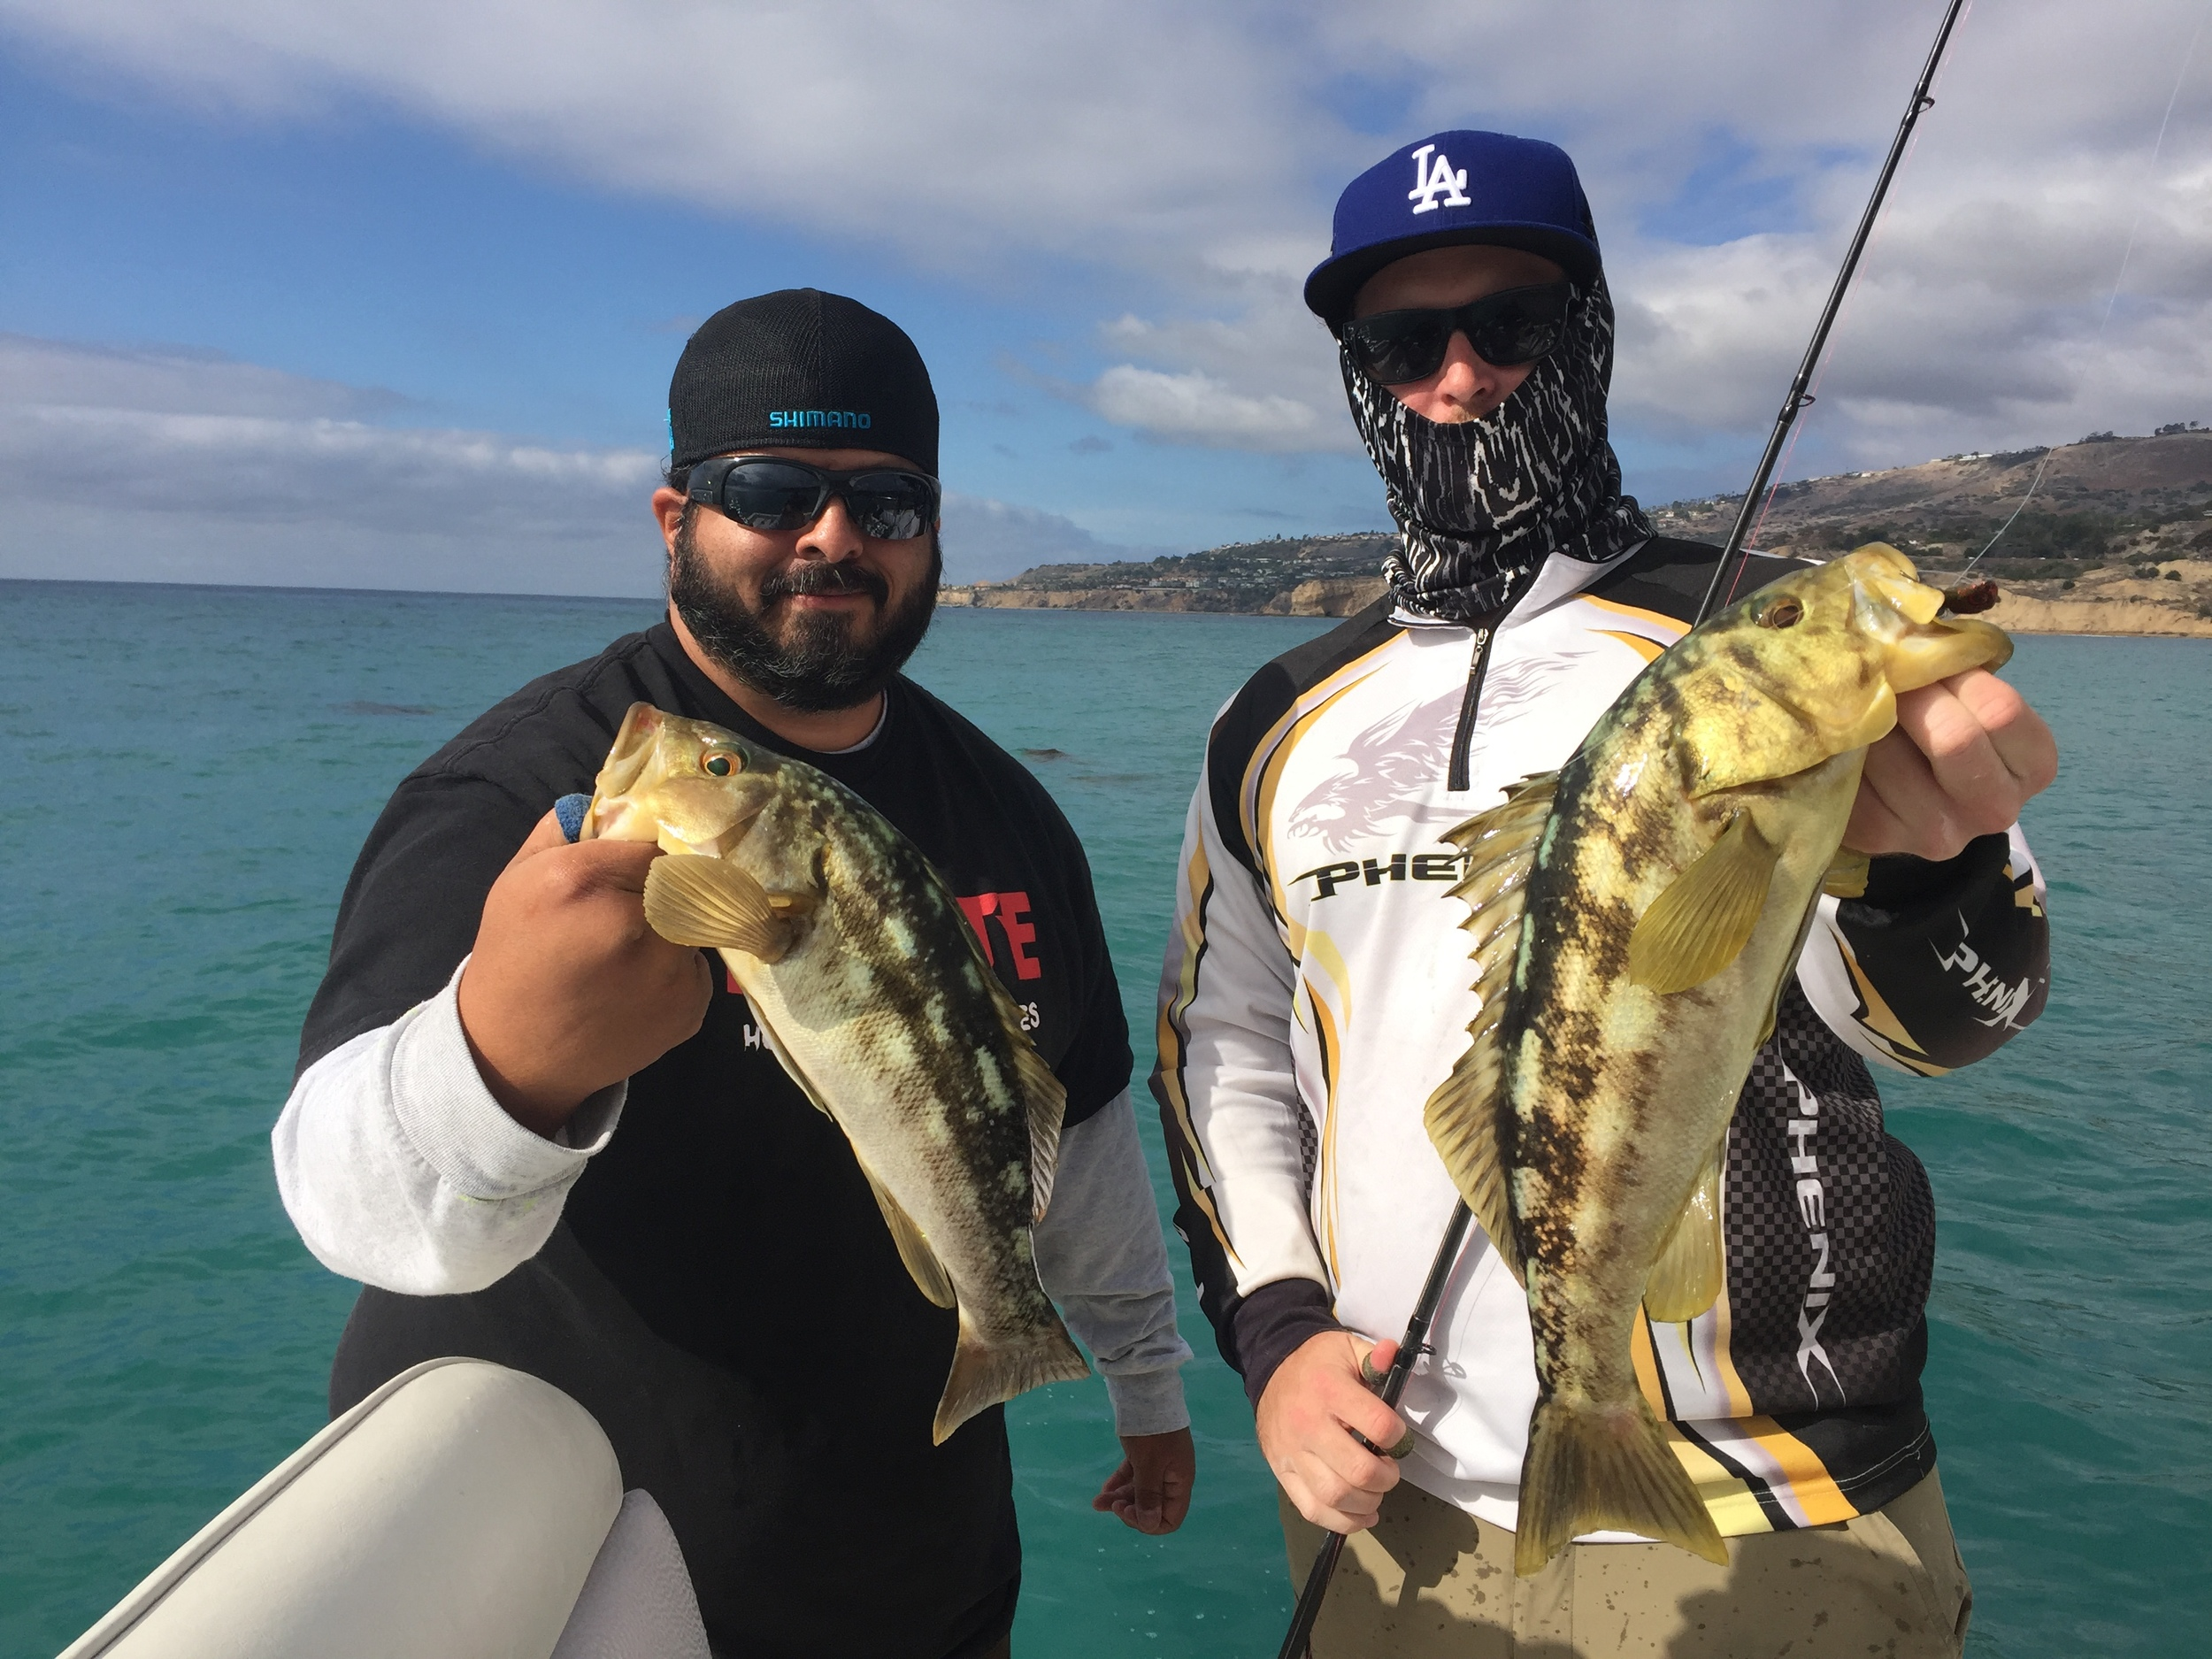 Diego and Jeff doubled up on local Winter Calico Bass at Palos Verdes!